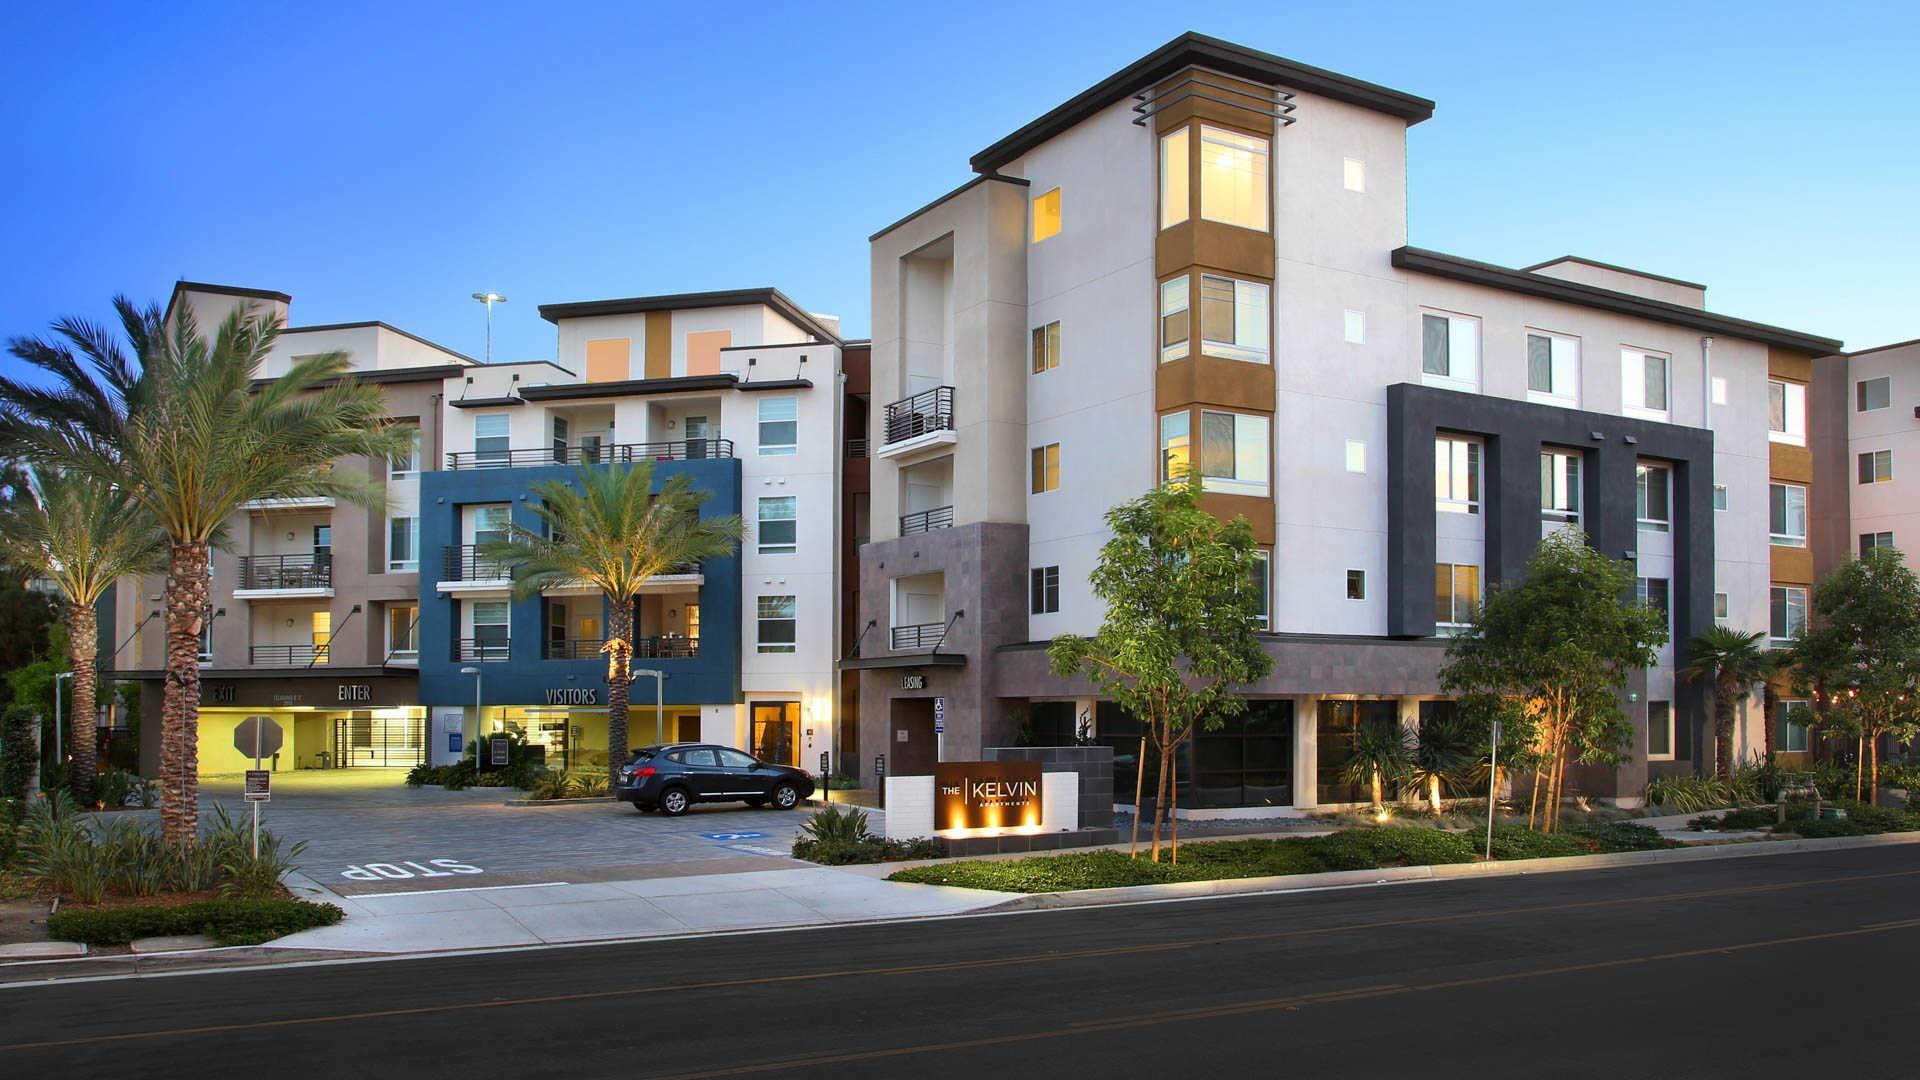 Studio Apartments For Rent In Irvine Ca